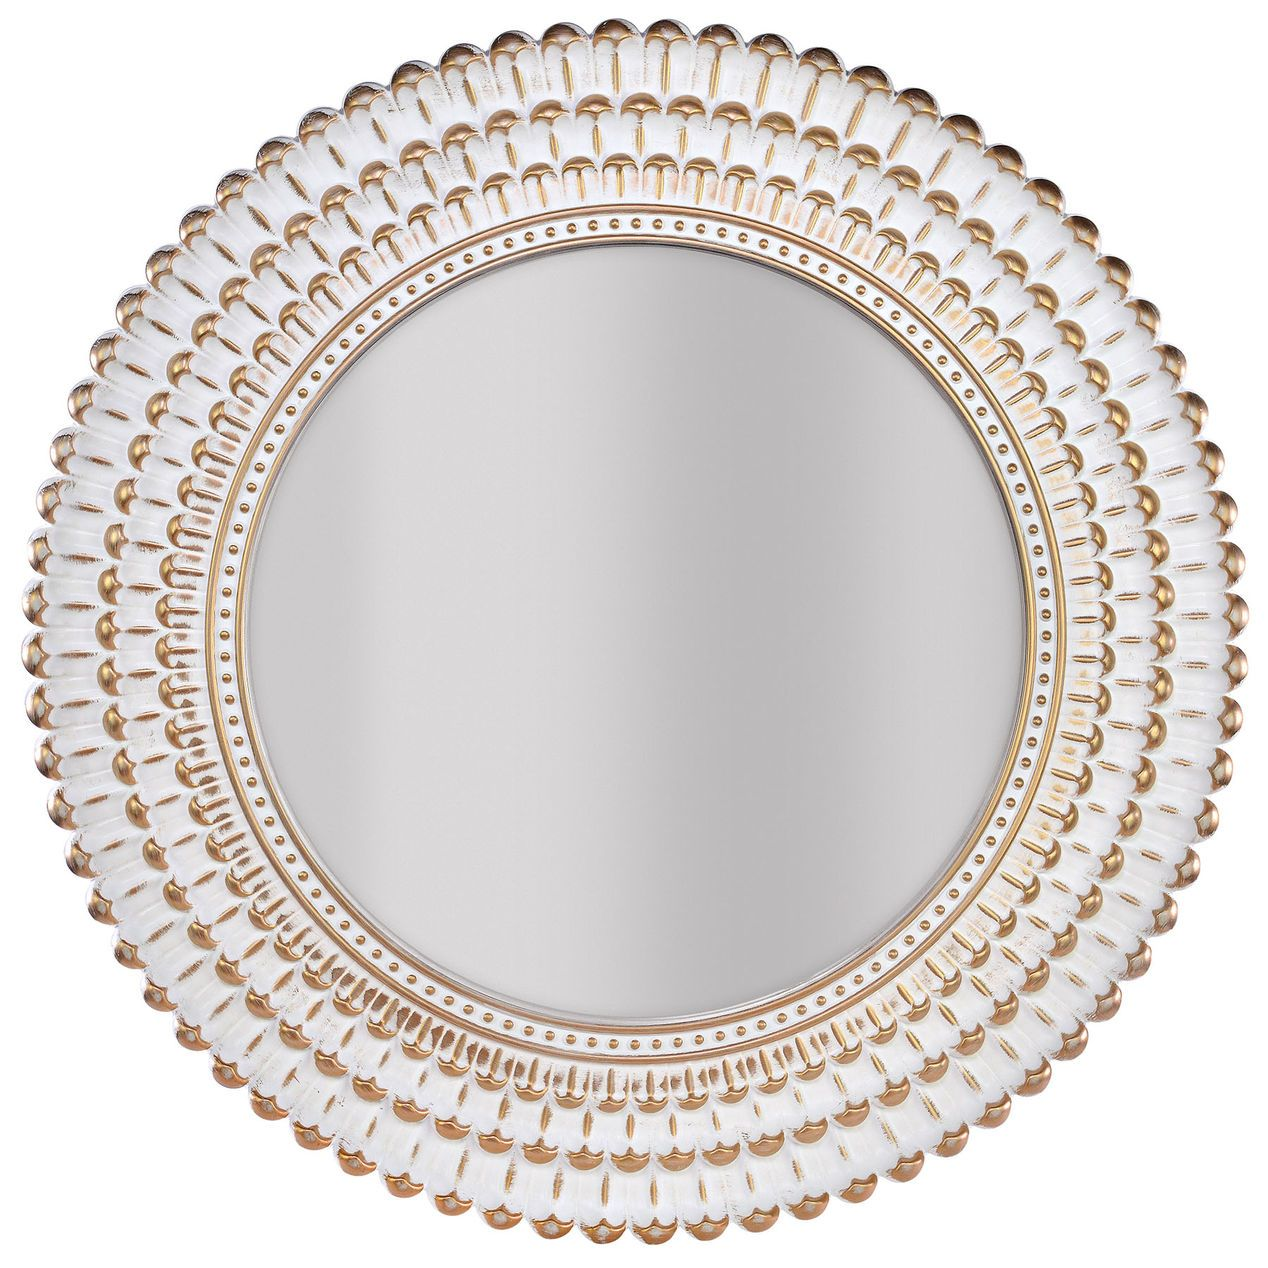 22in White With Gold Mirror Beaded Mirror Gold Girls Room Mirror